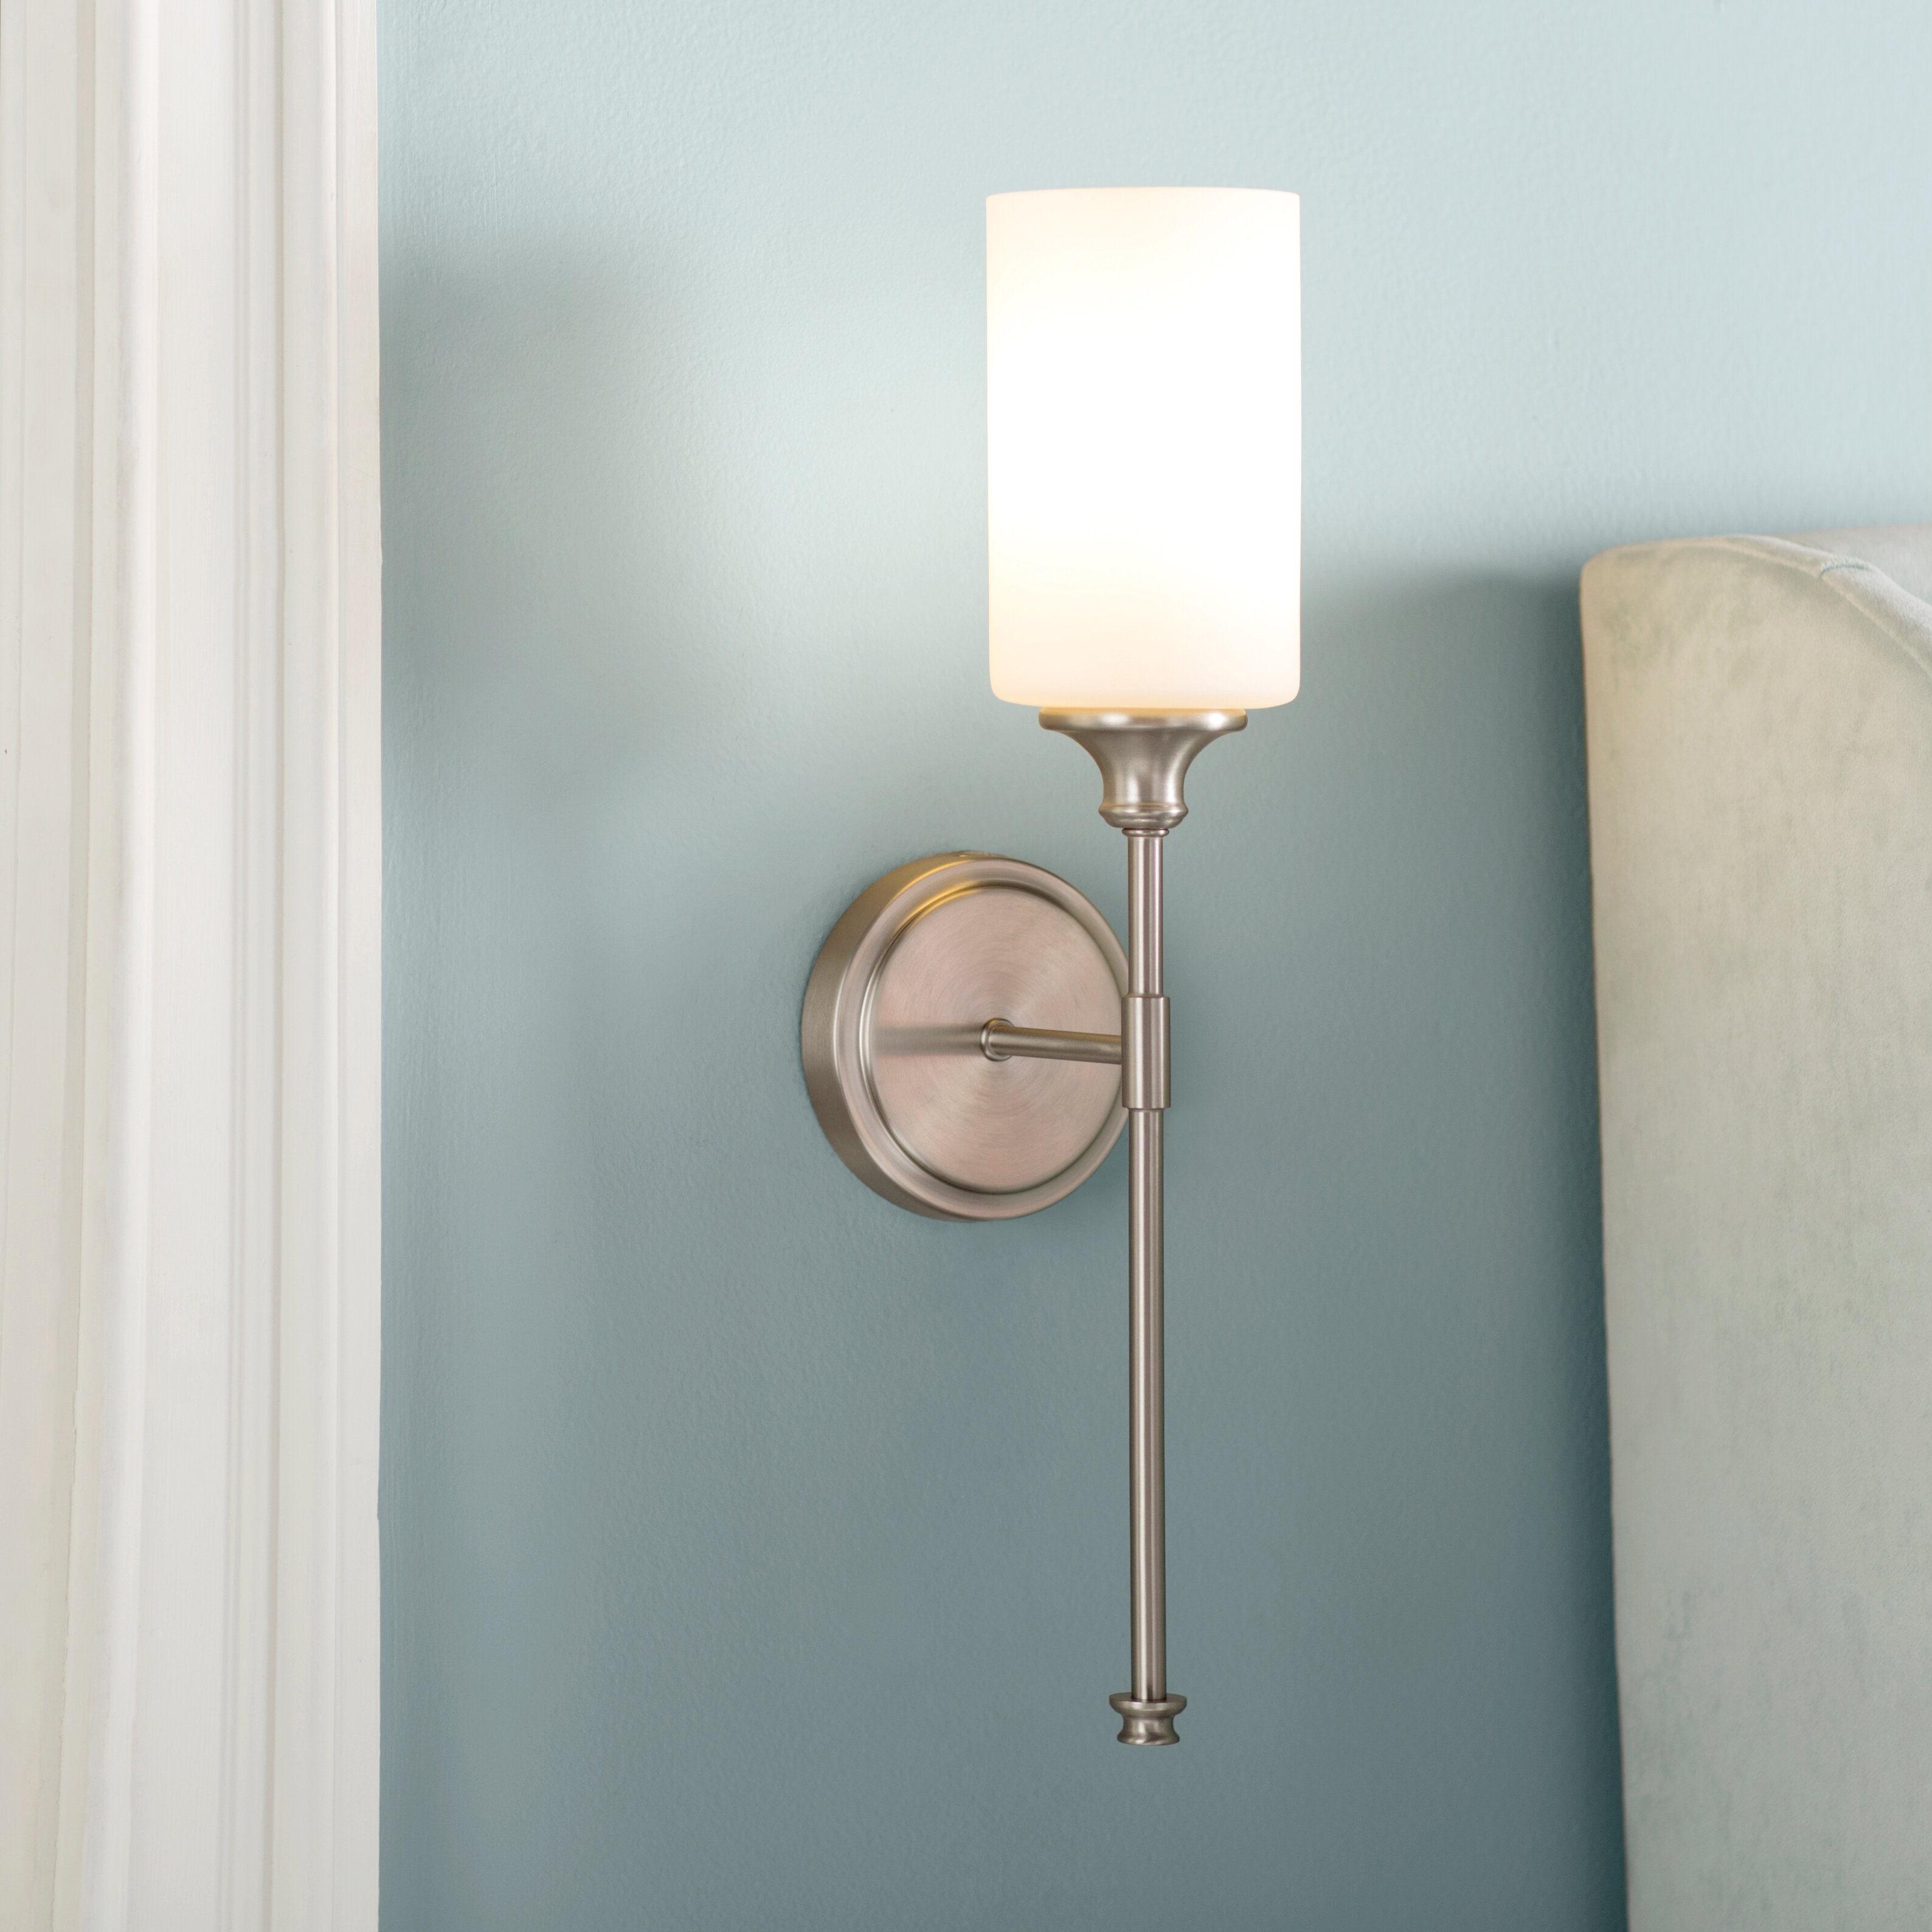 reading styles sconces swing colors and that covers cute lamps bedroom plug mounted with night lamp lots outlet light cord lighting of vintage lights simple in arm into wall sconce